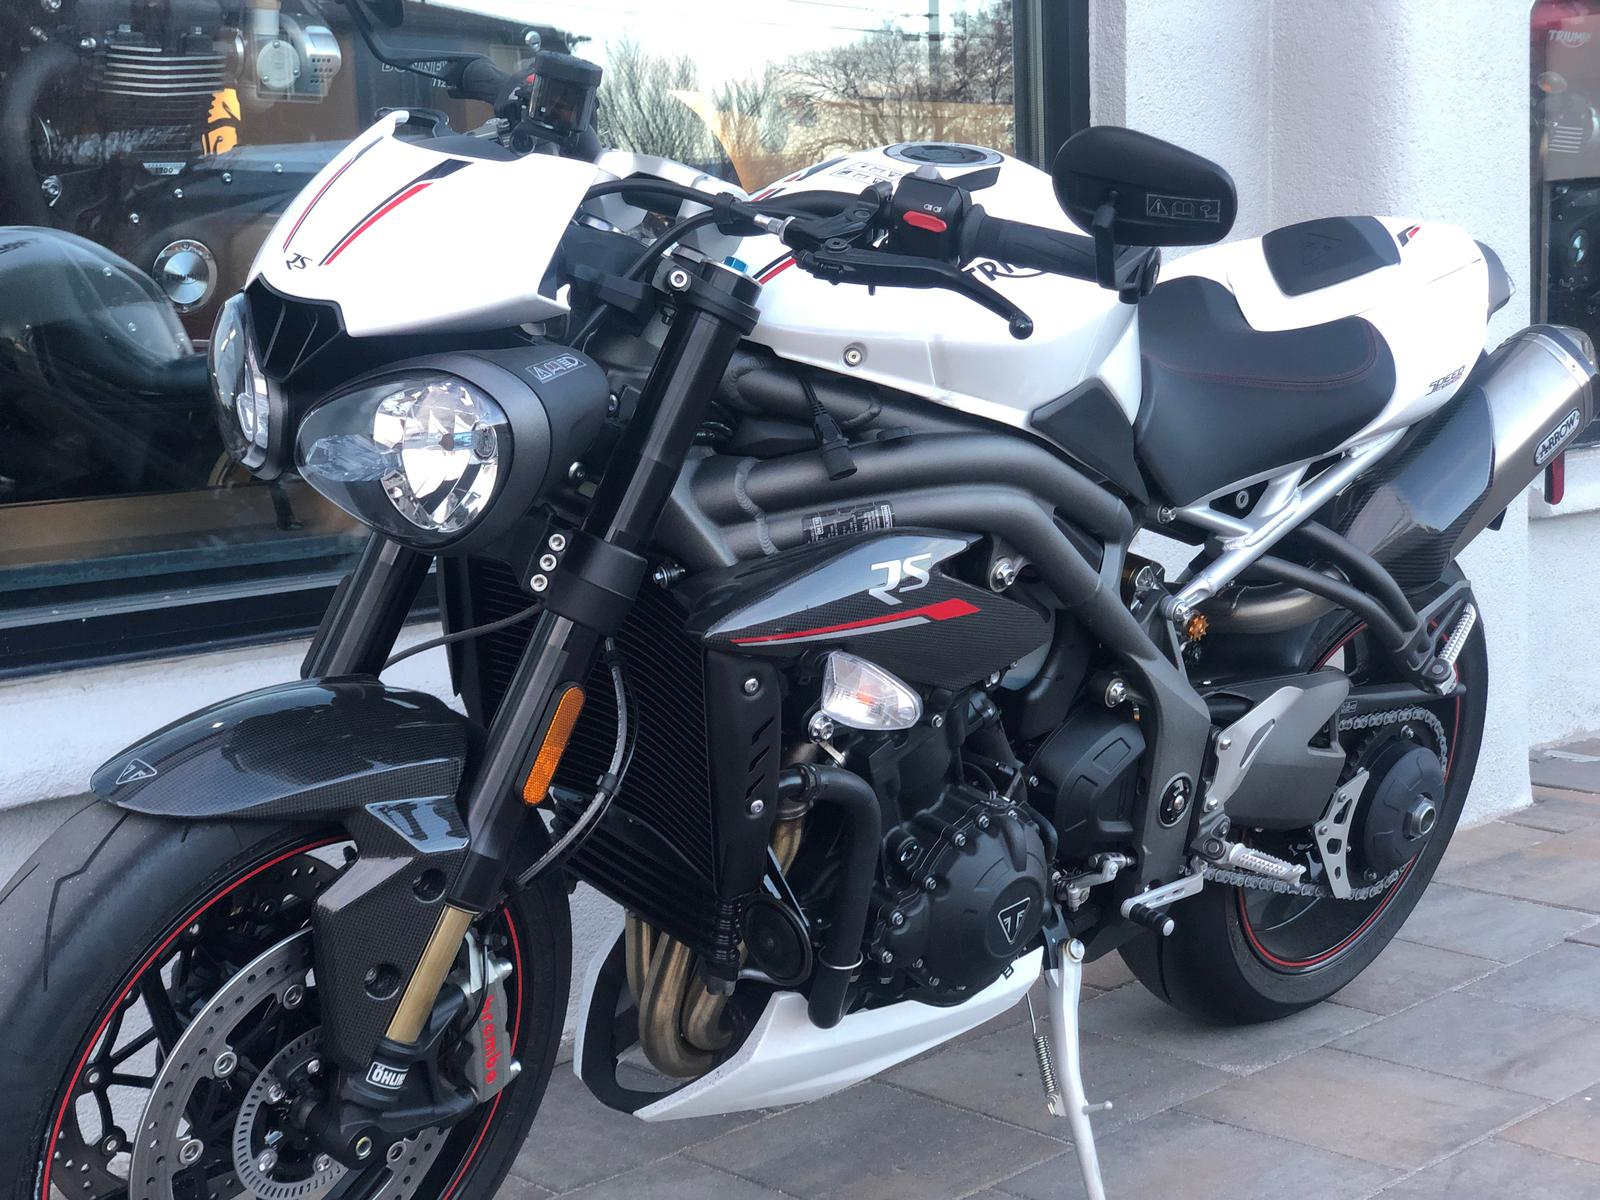 2019 Triumph Speed Triple Rs For Sale In Reno Nv Euro Cycle Reno